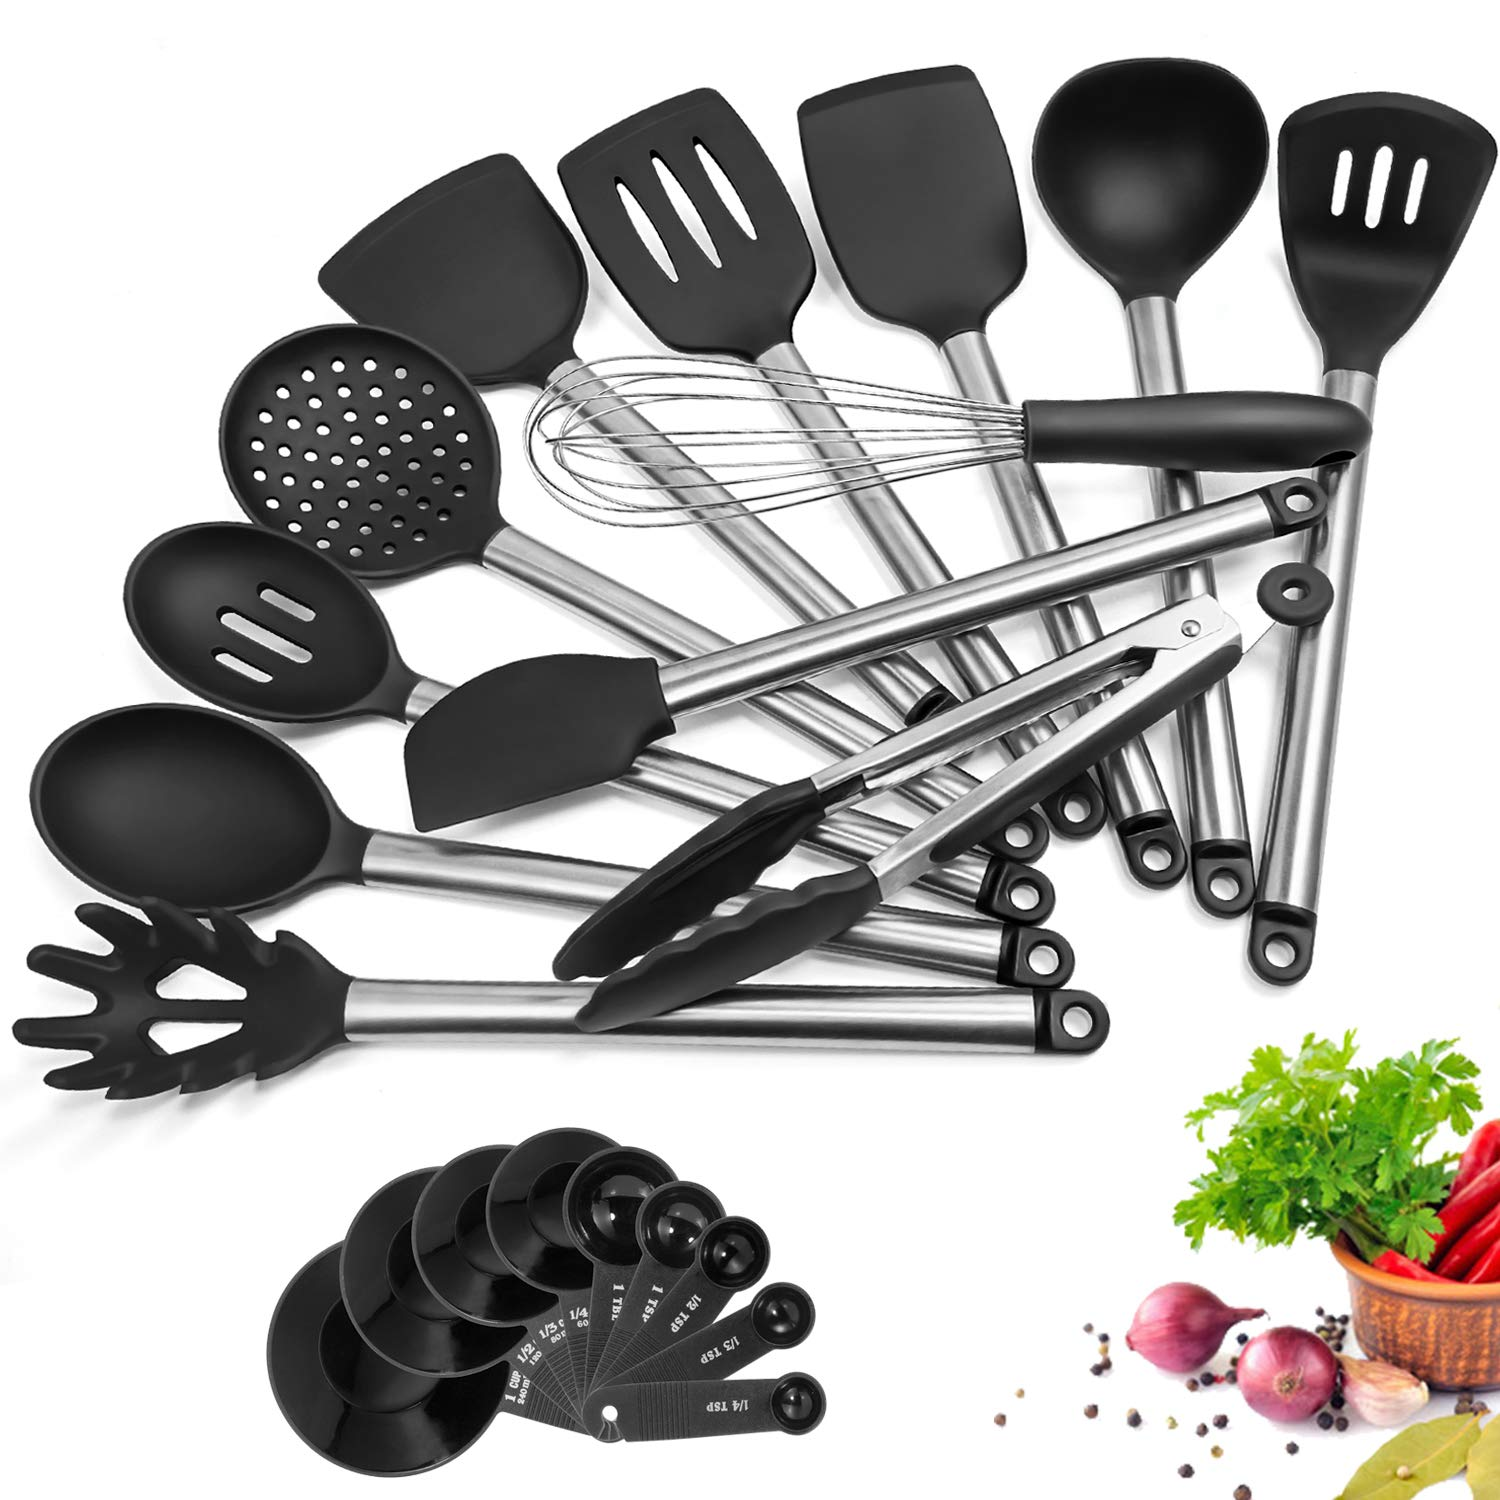 Details about Kitchen Utensil Set, 21 Piece AILUKI Cook Utensil Set  Silicone Cooking Utensil